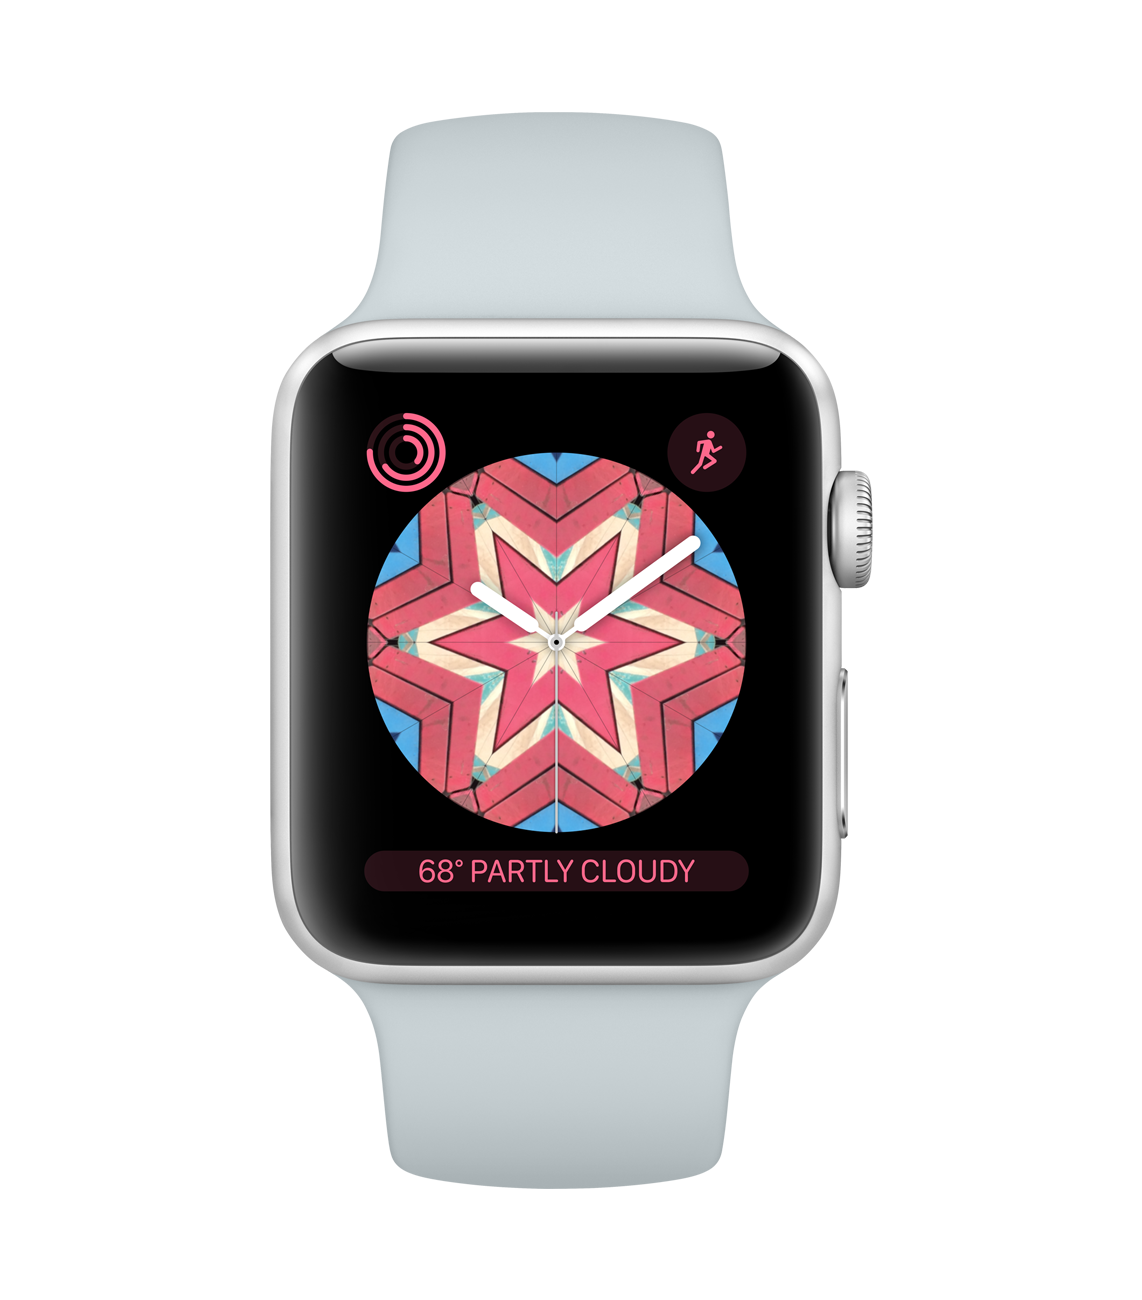 Kaleidoscope Watch Face